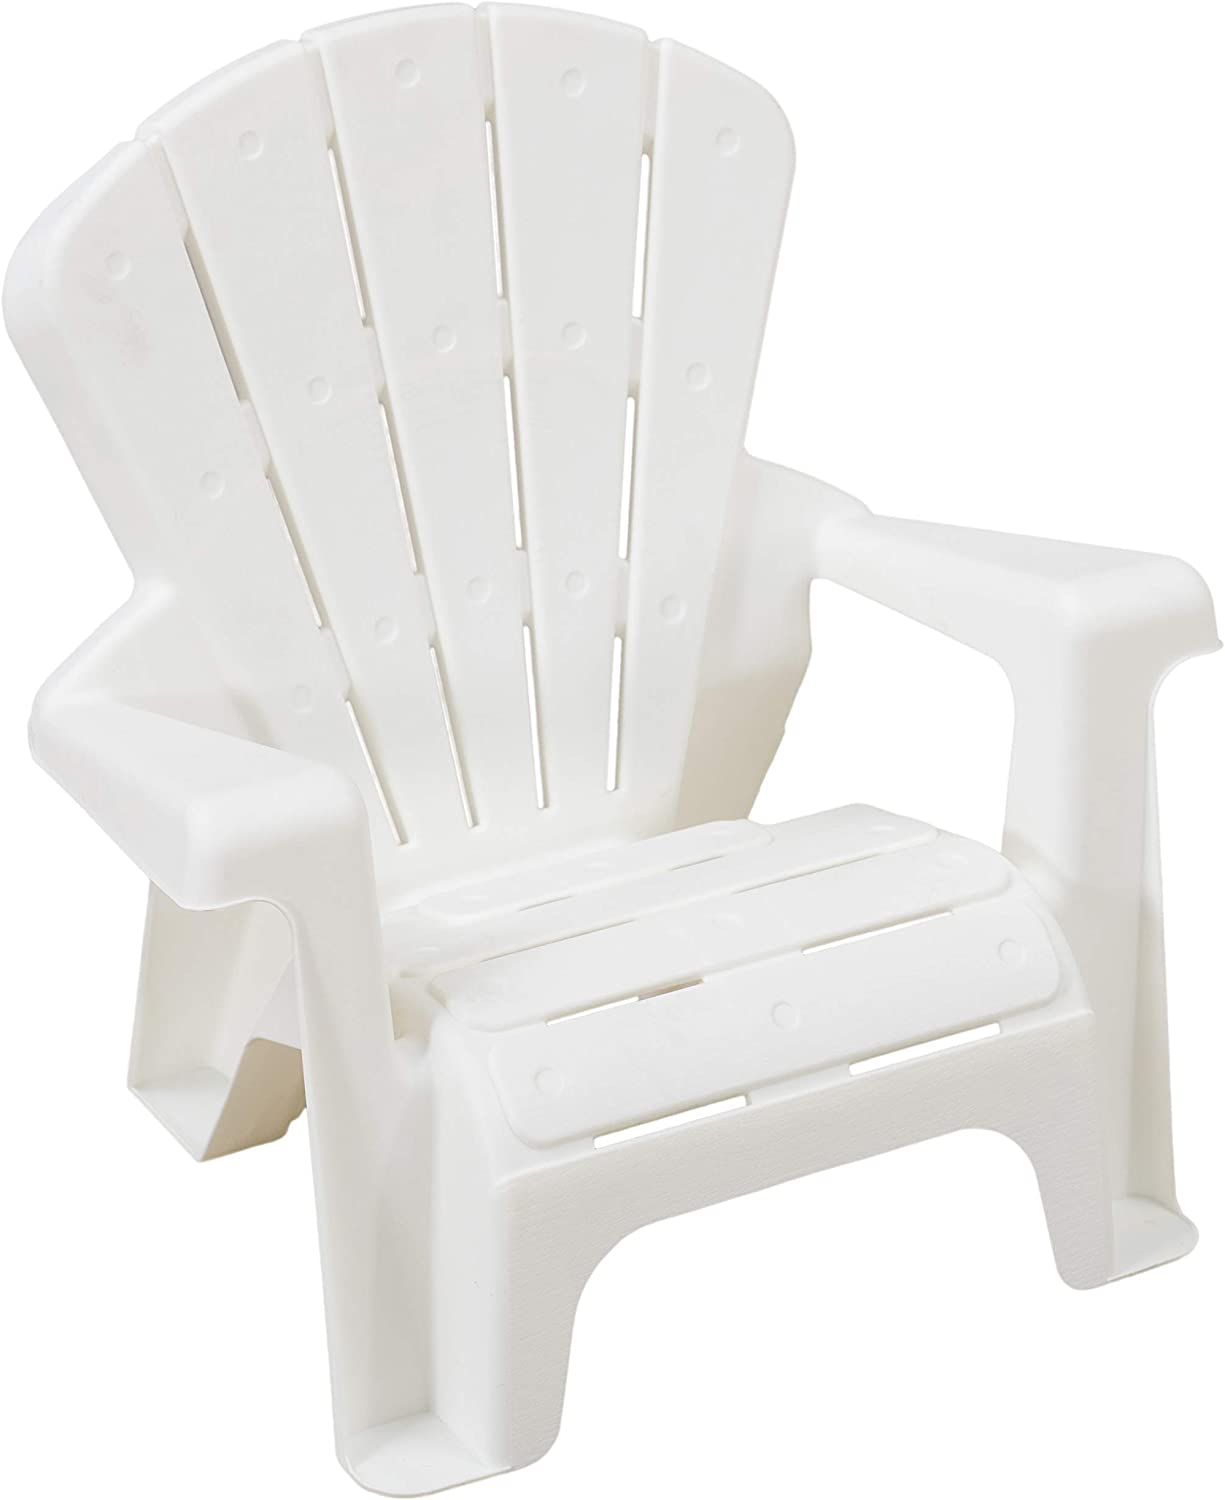 AmazonBasics Indoor and Outdoor Plastic Toddler Chairs - 4 Pack, White